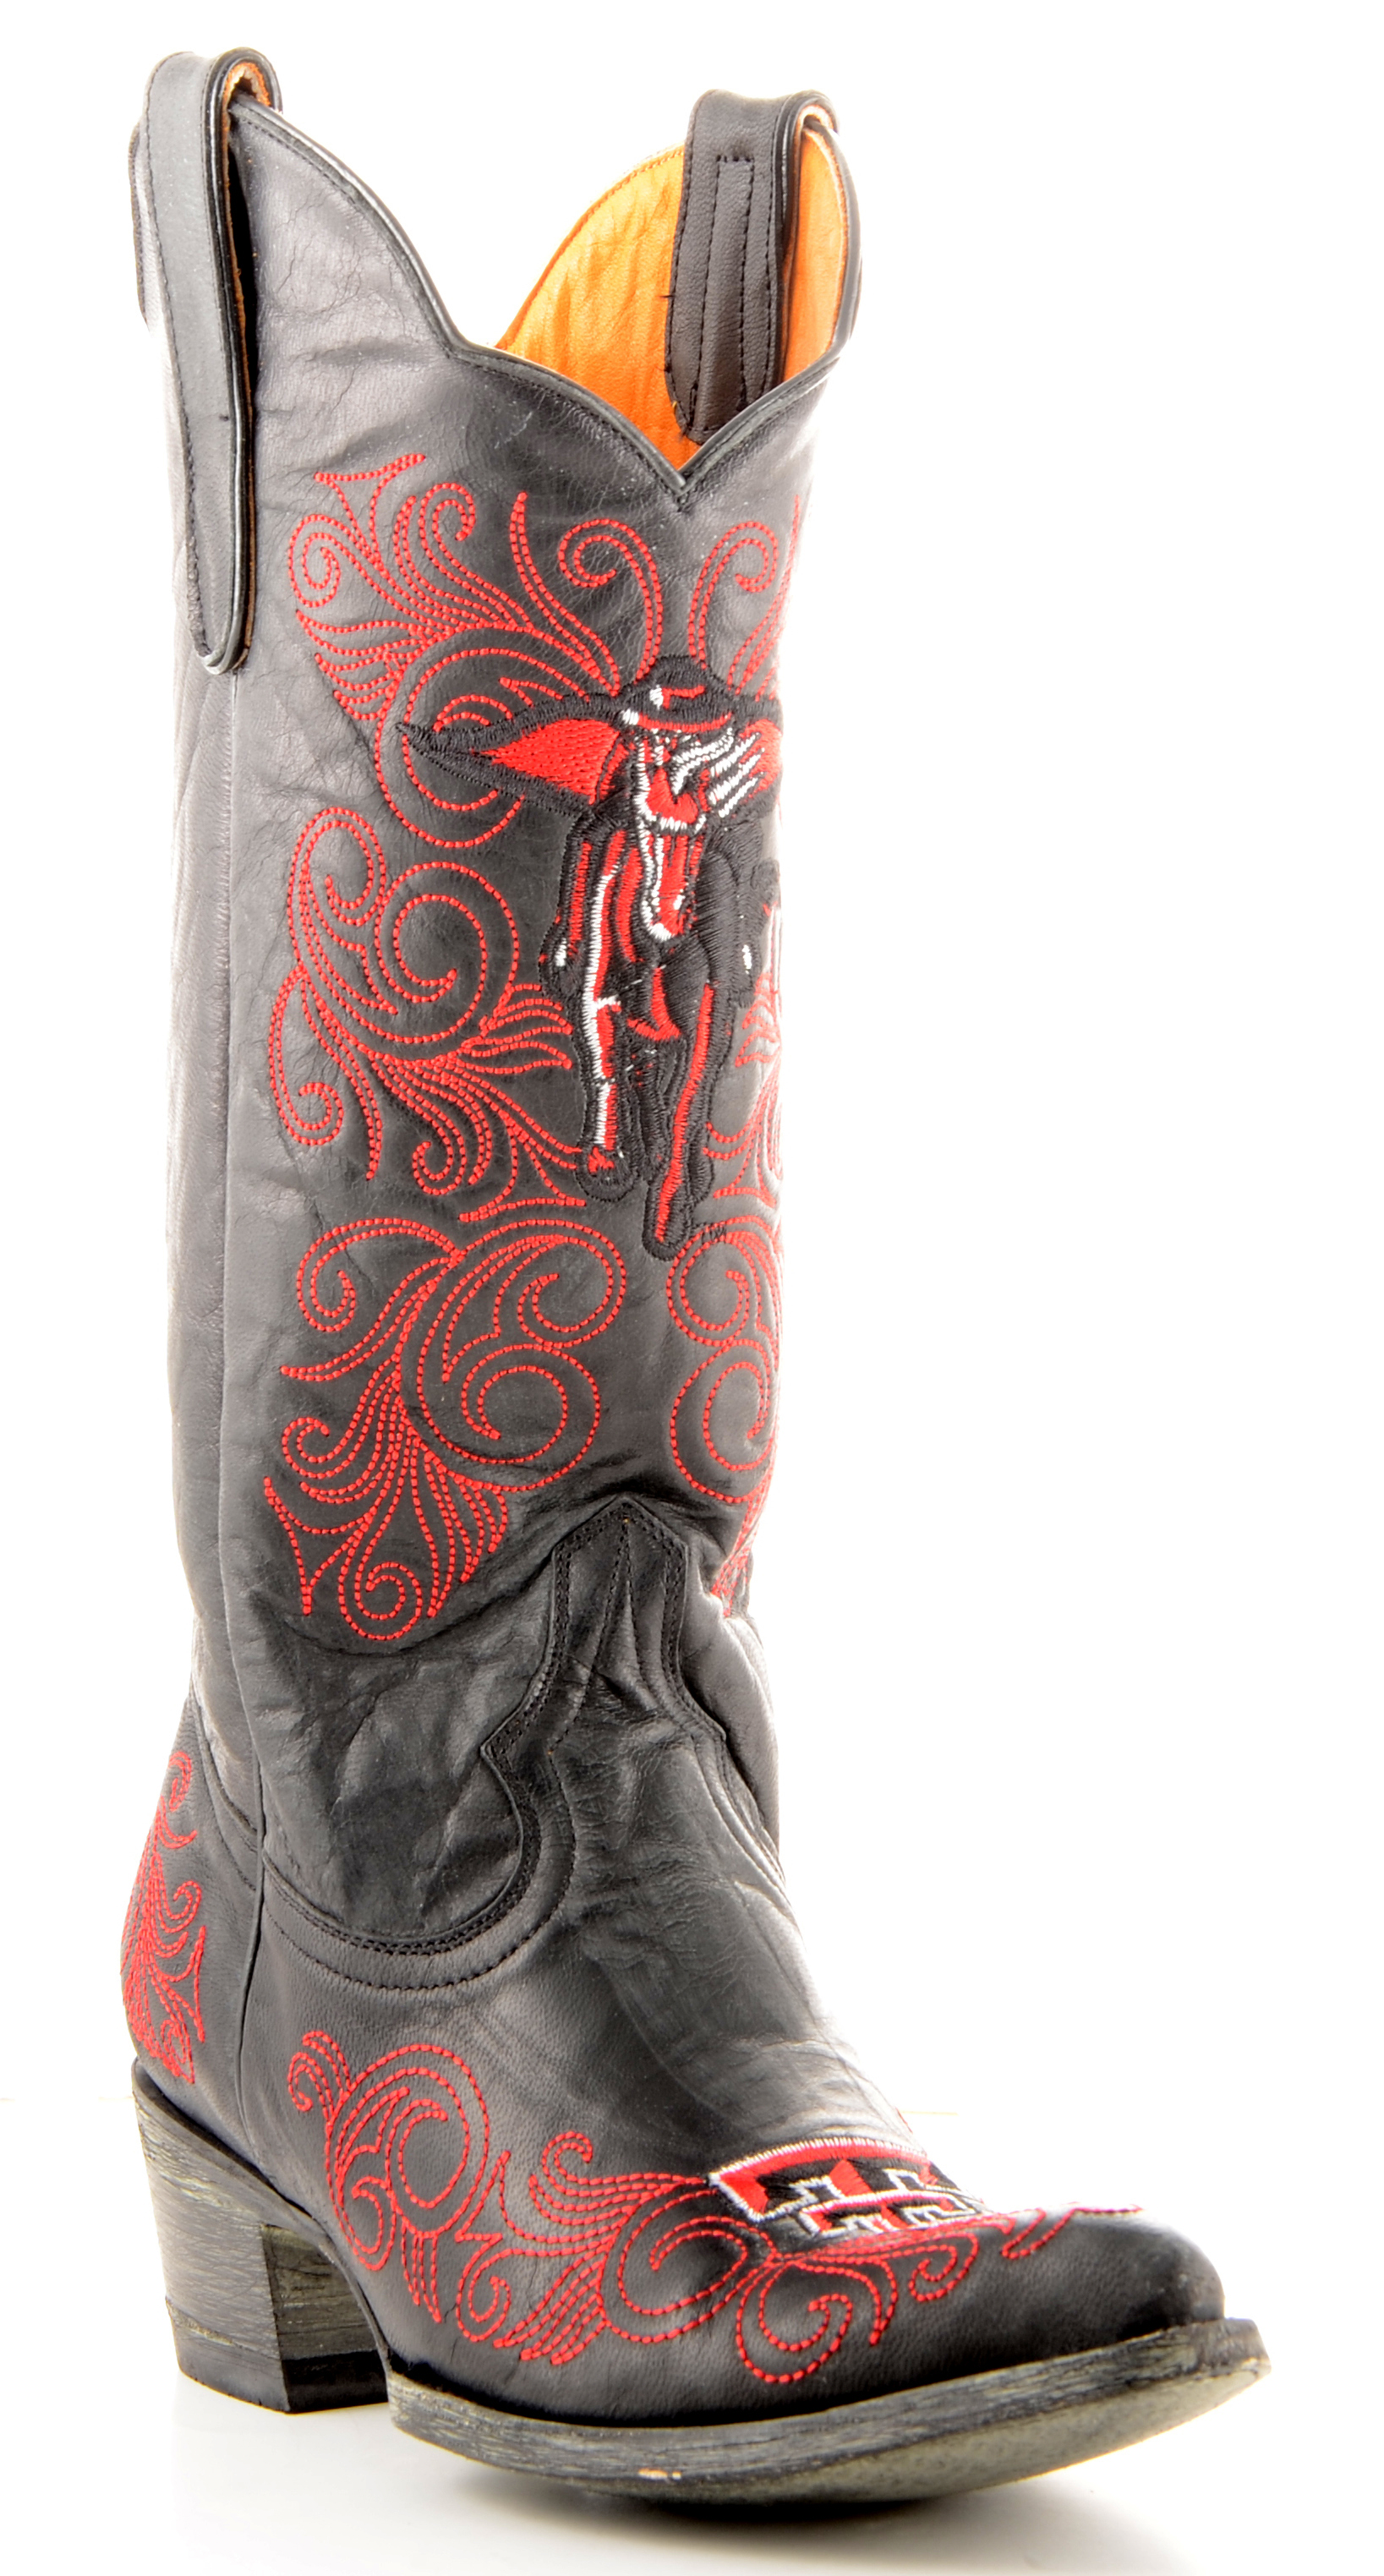 "Gameday Womens 13"" Black Leather Texas Tech Cowboy Boots (Size 10.5) TT-L010-1 by GameDay Boots"